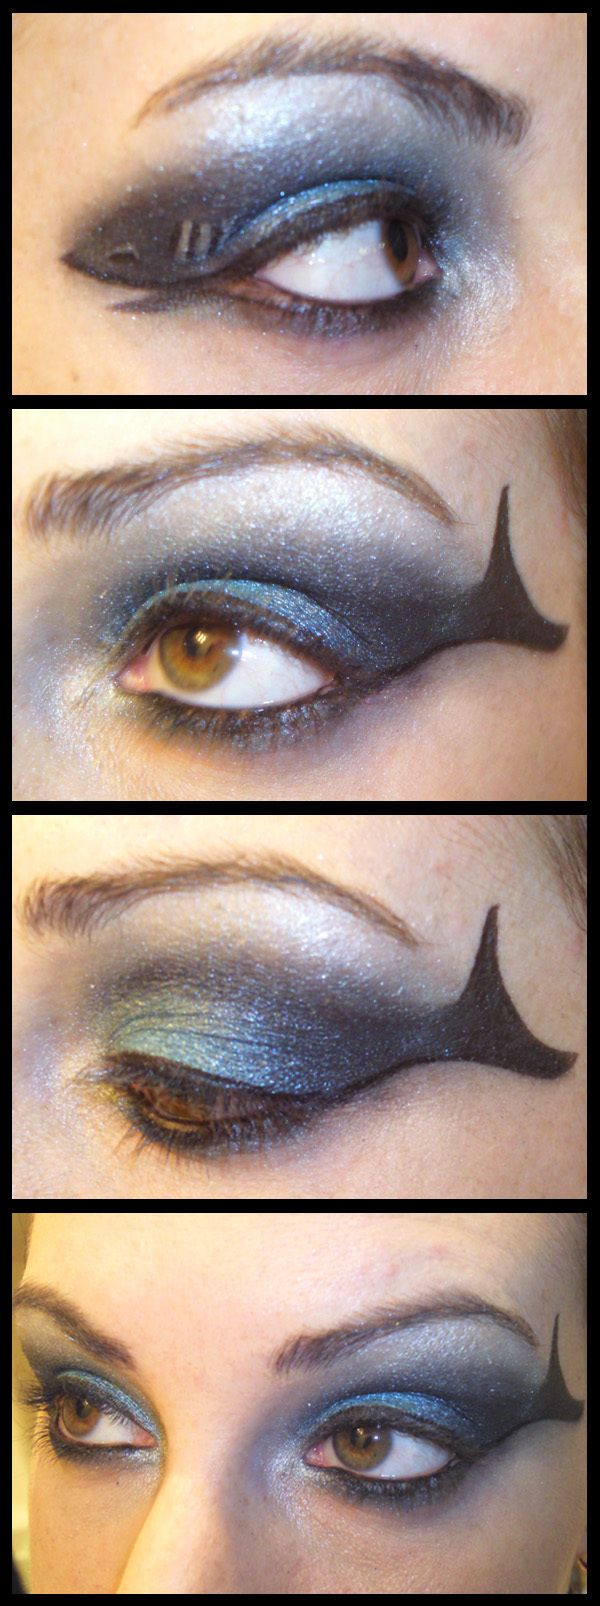 Recently I have been playing around with doing dramatic makeup looks. I was inspired by a youtube tutorial I saw. Here is the firstshoot that I did the makeup for. It is of my friend Katelyn and …